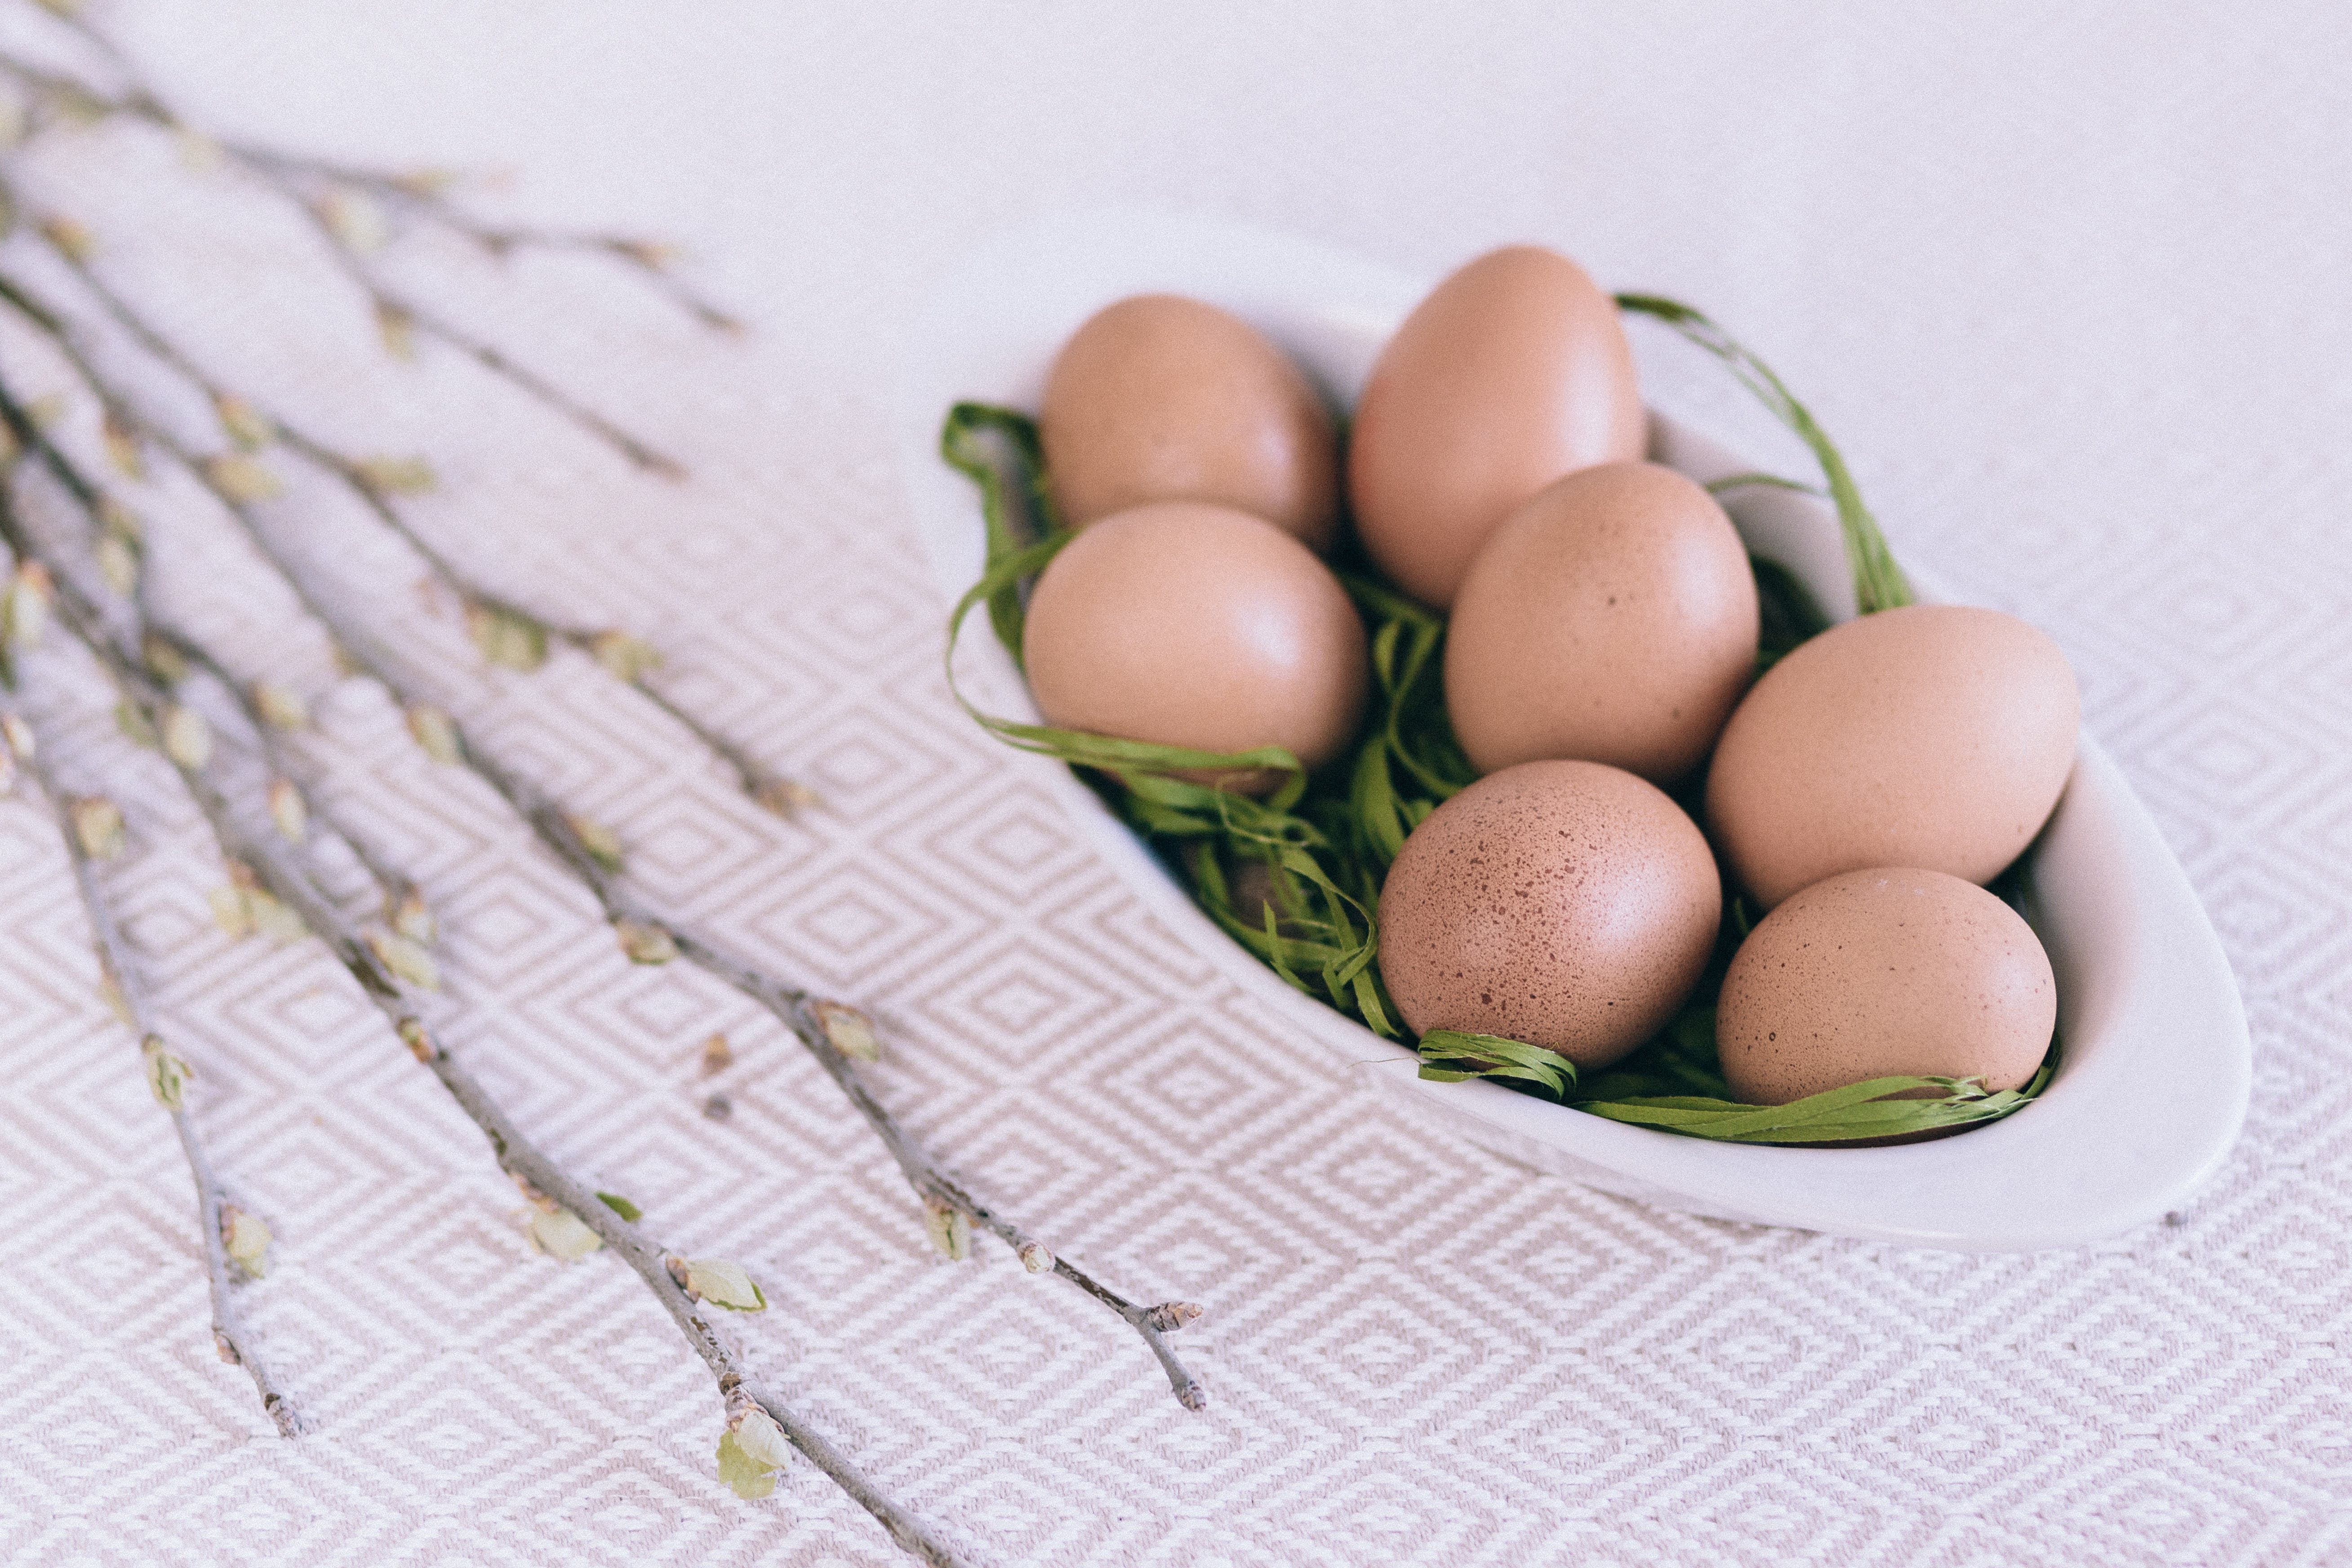 Bowl of Organic Eggs on Table